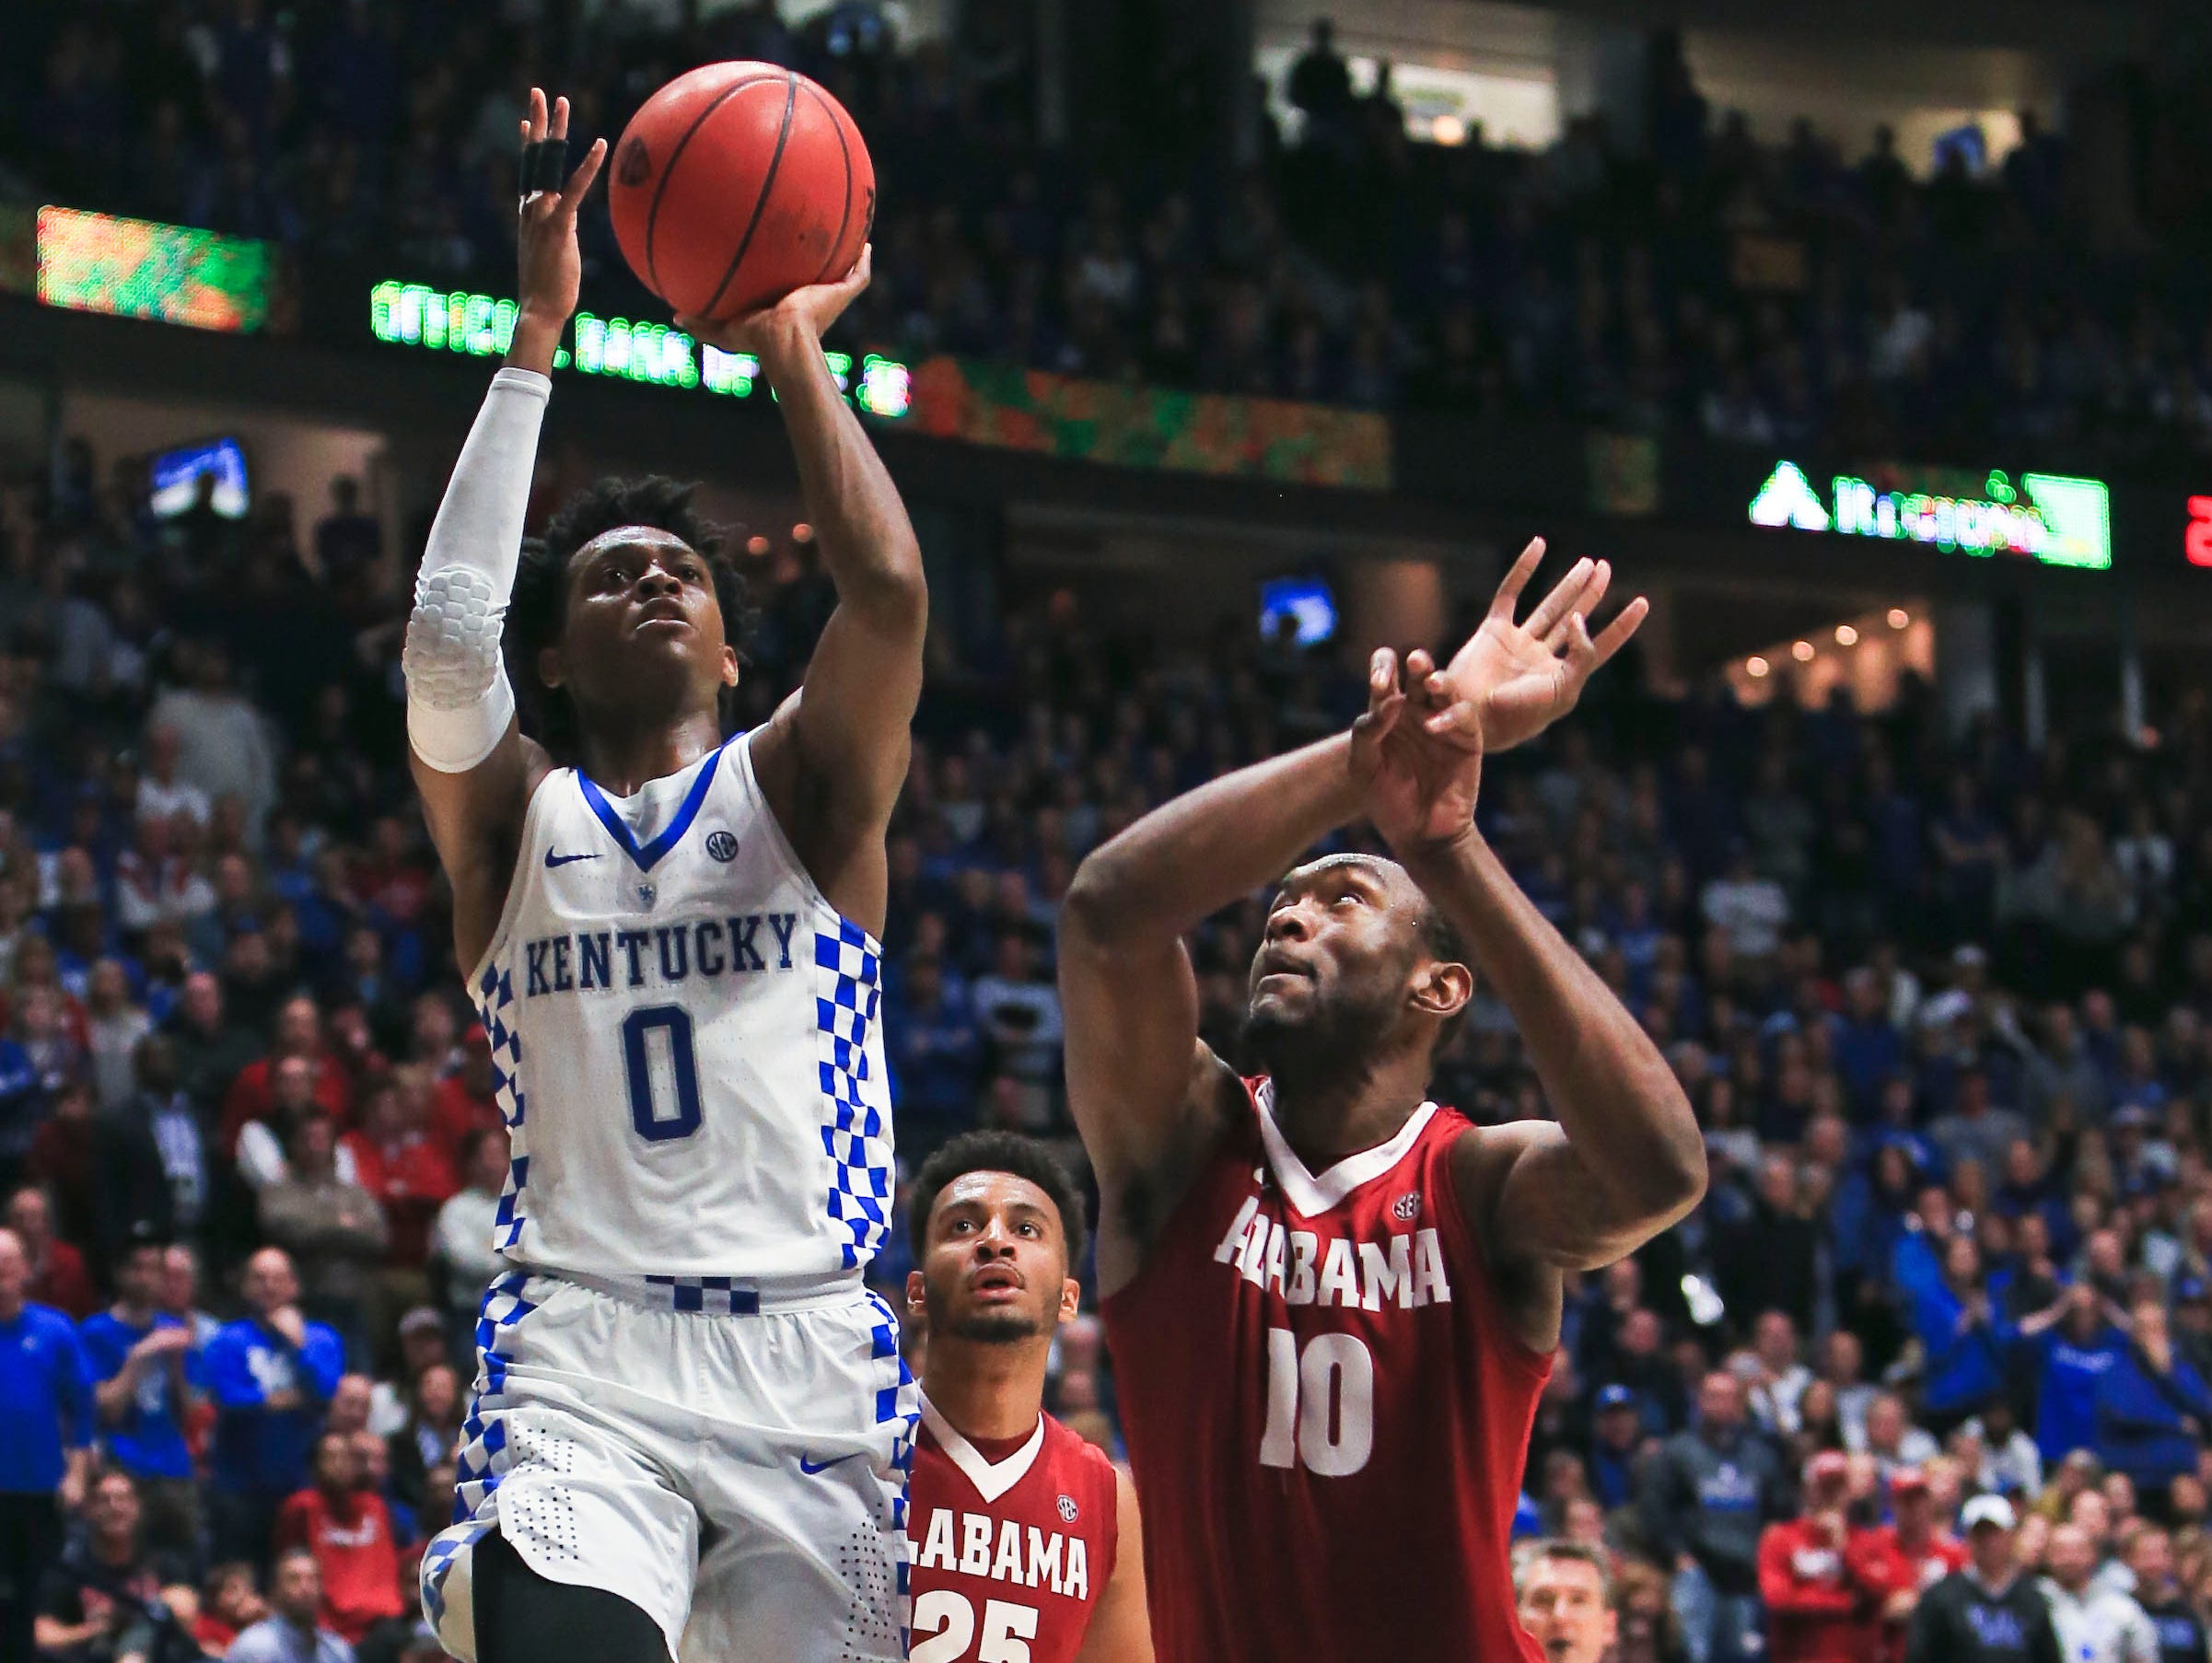 Kentucky's De'Aaron Fox goes for two of his career-high 28 points with this layup to easily seal the Wildcats' victory over the Tide Saturday afternoon in the SEC semifinal tournament game in Nashville.